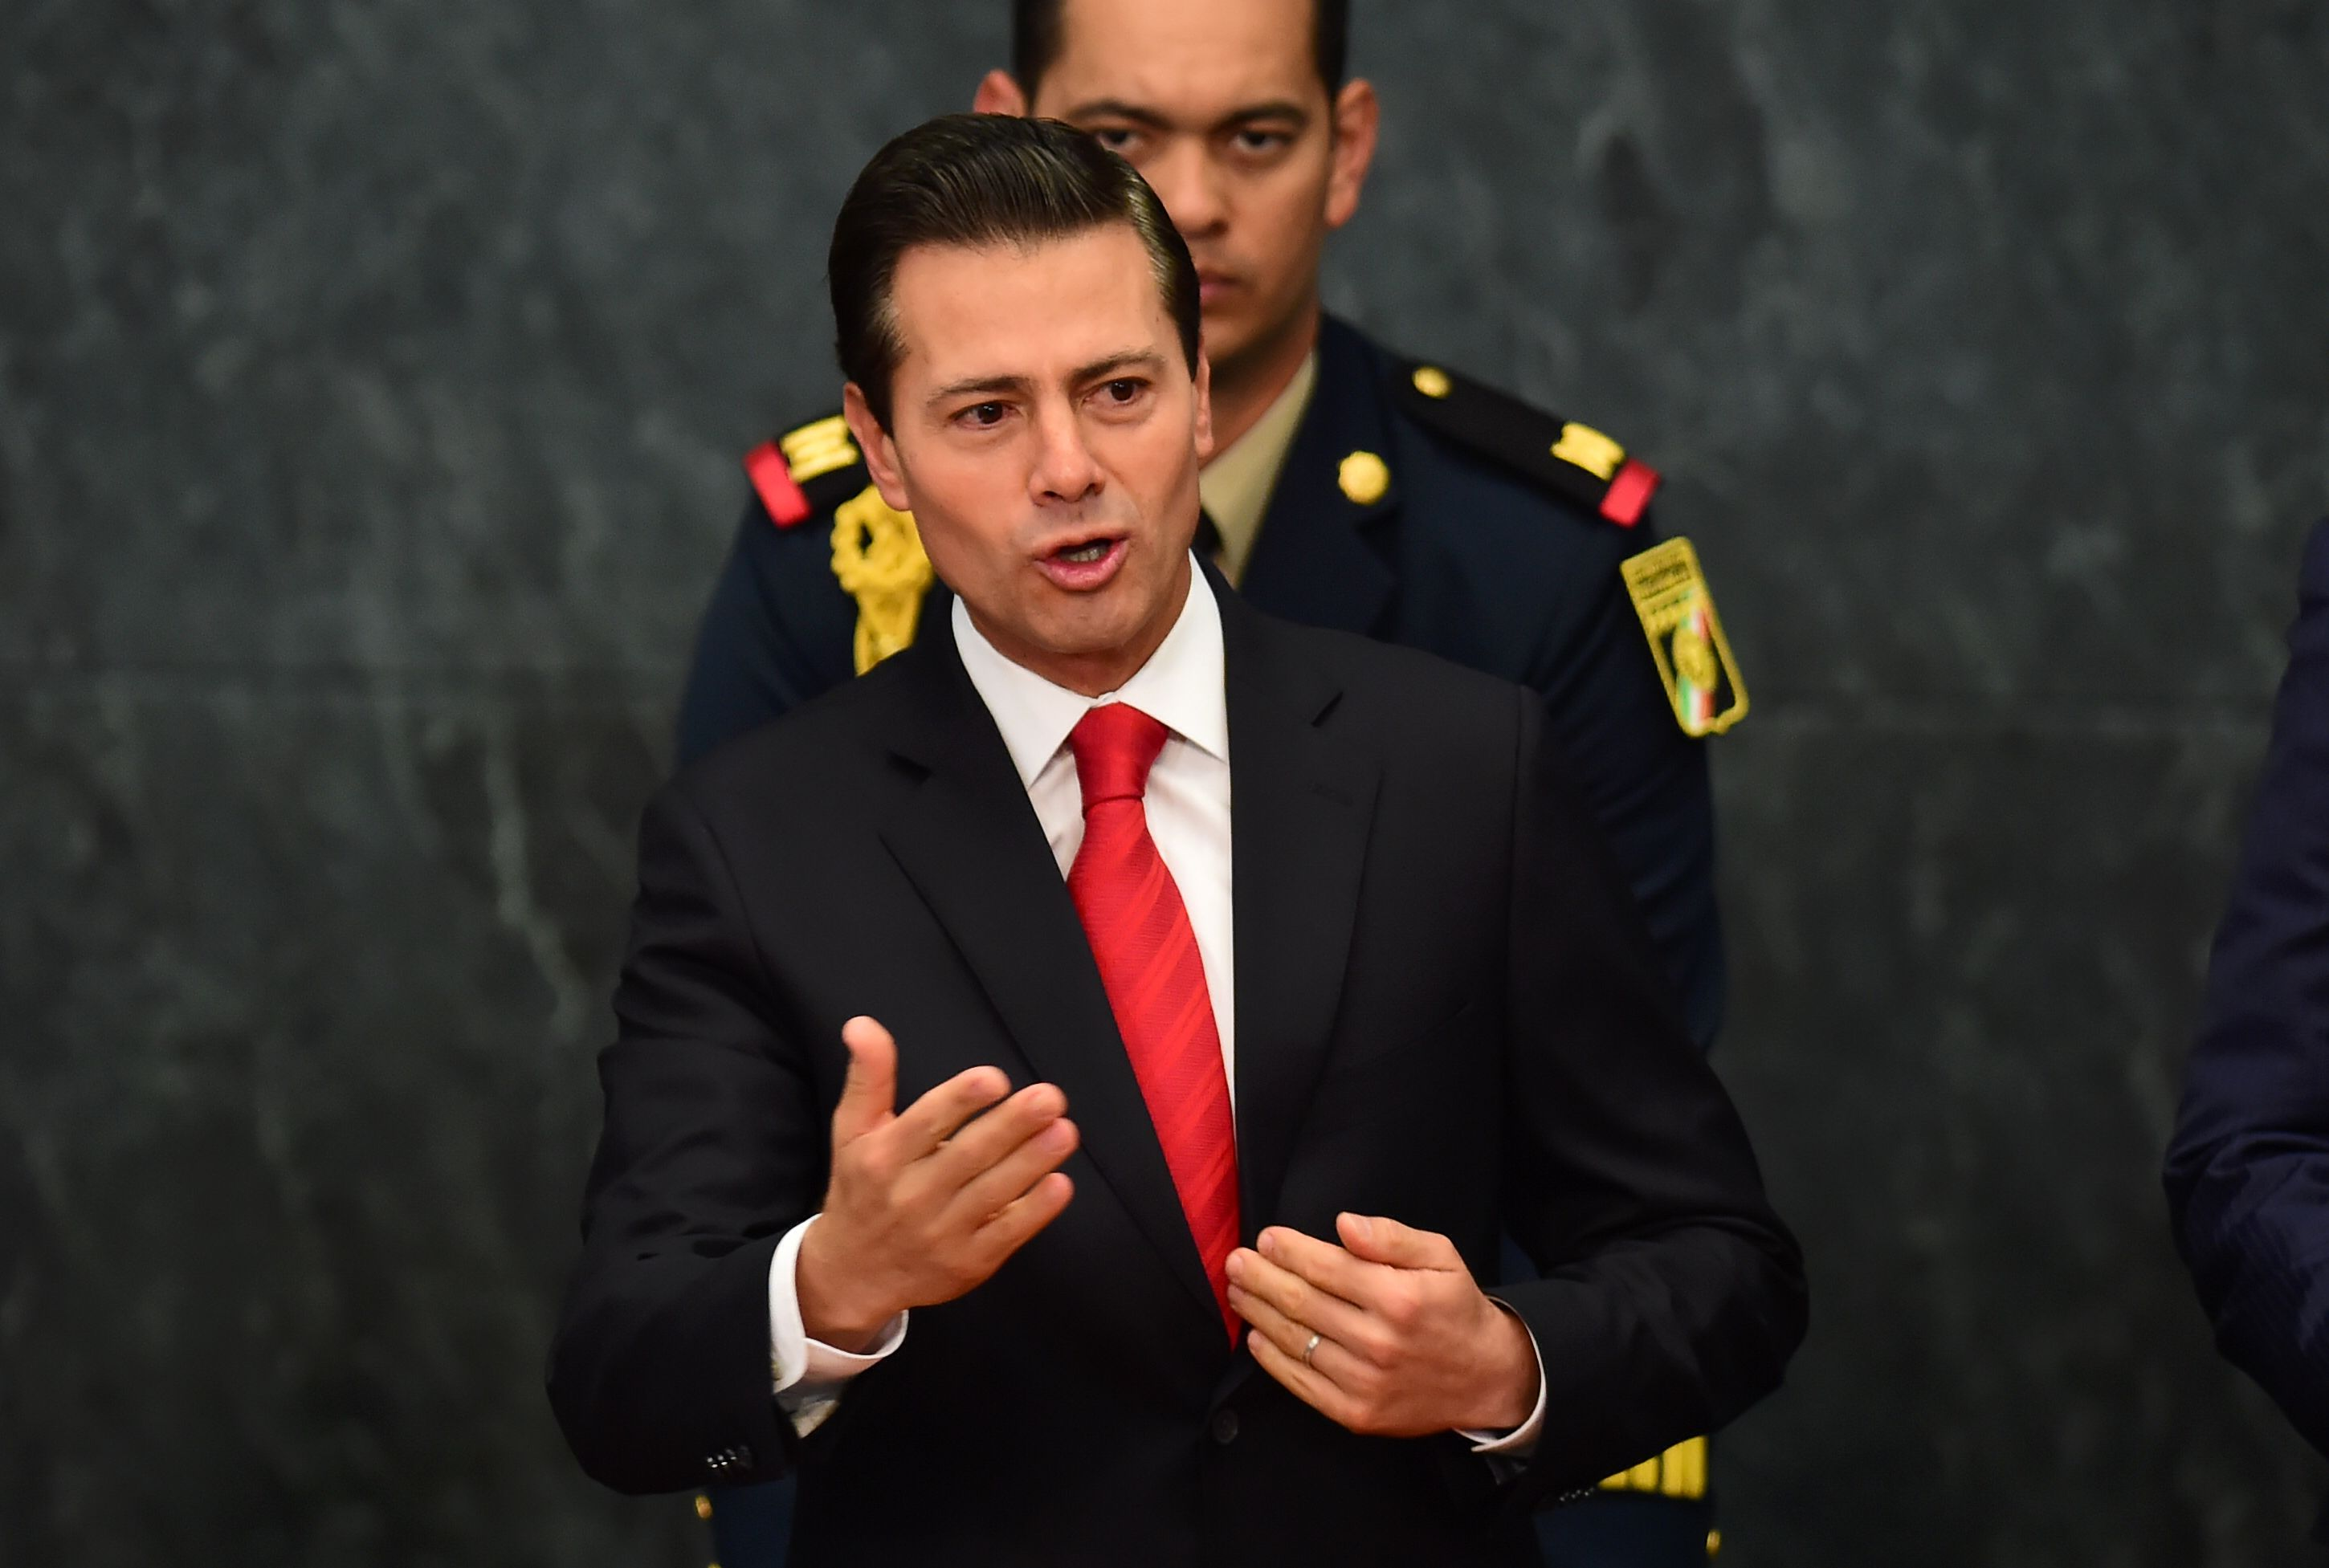 Mexican President Enrique Pena Nieto gives a foreign policy speech after US President Donald Trump vowed to start renegotiating North American trade ties, in Mexico City on Jan. 23, 2017.